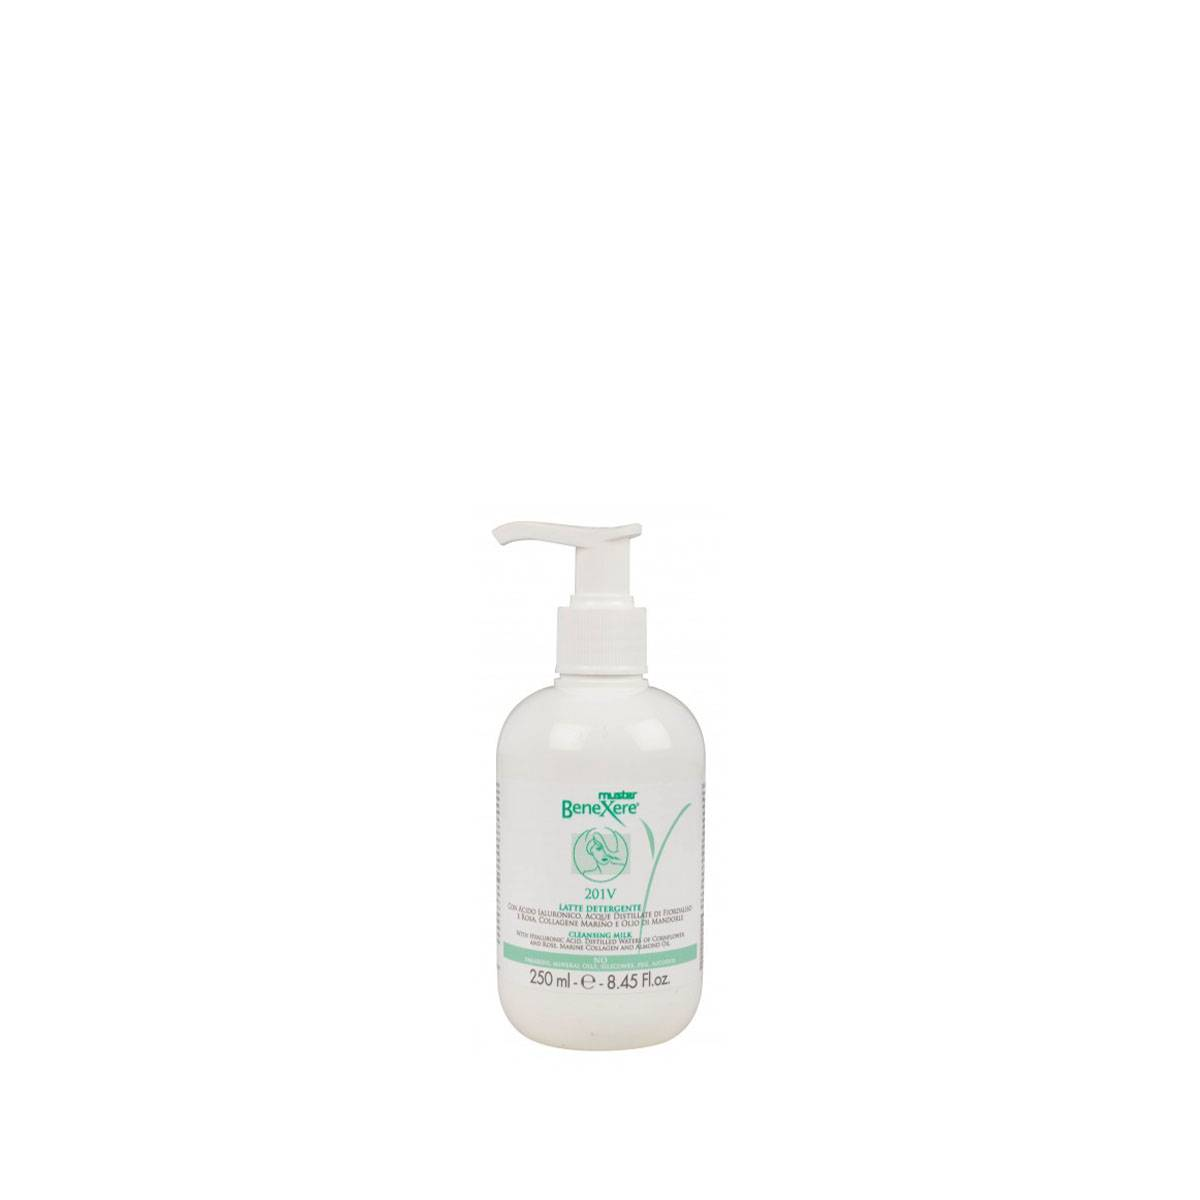 201v Latte Detergente 250ml Cleansing Milk